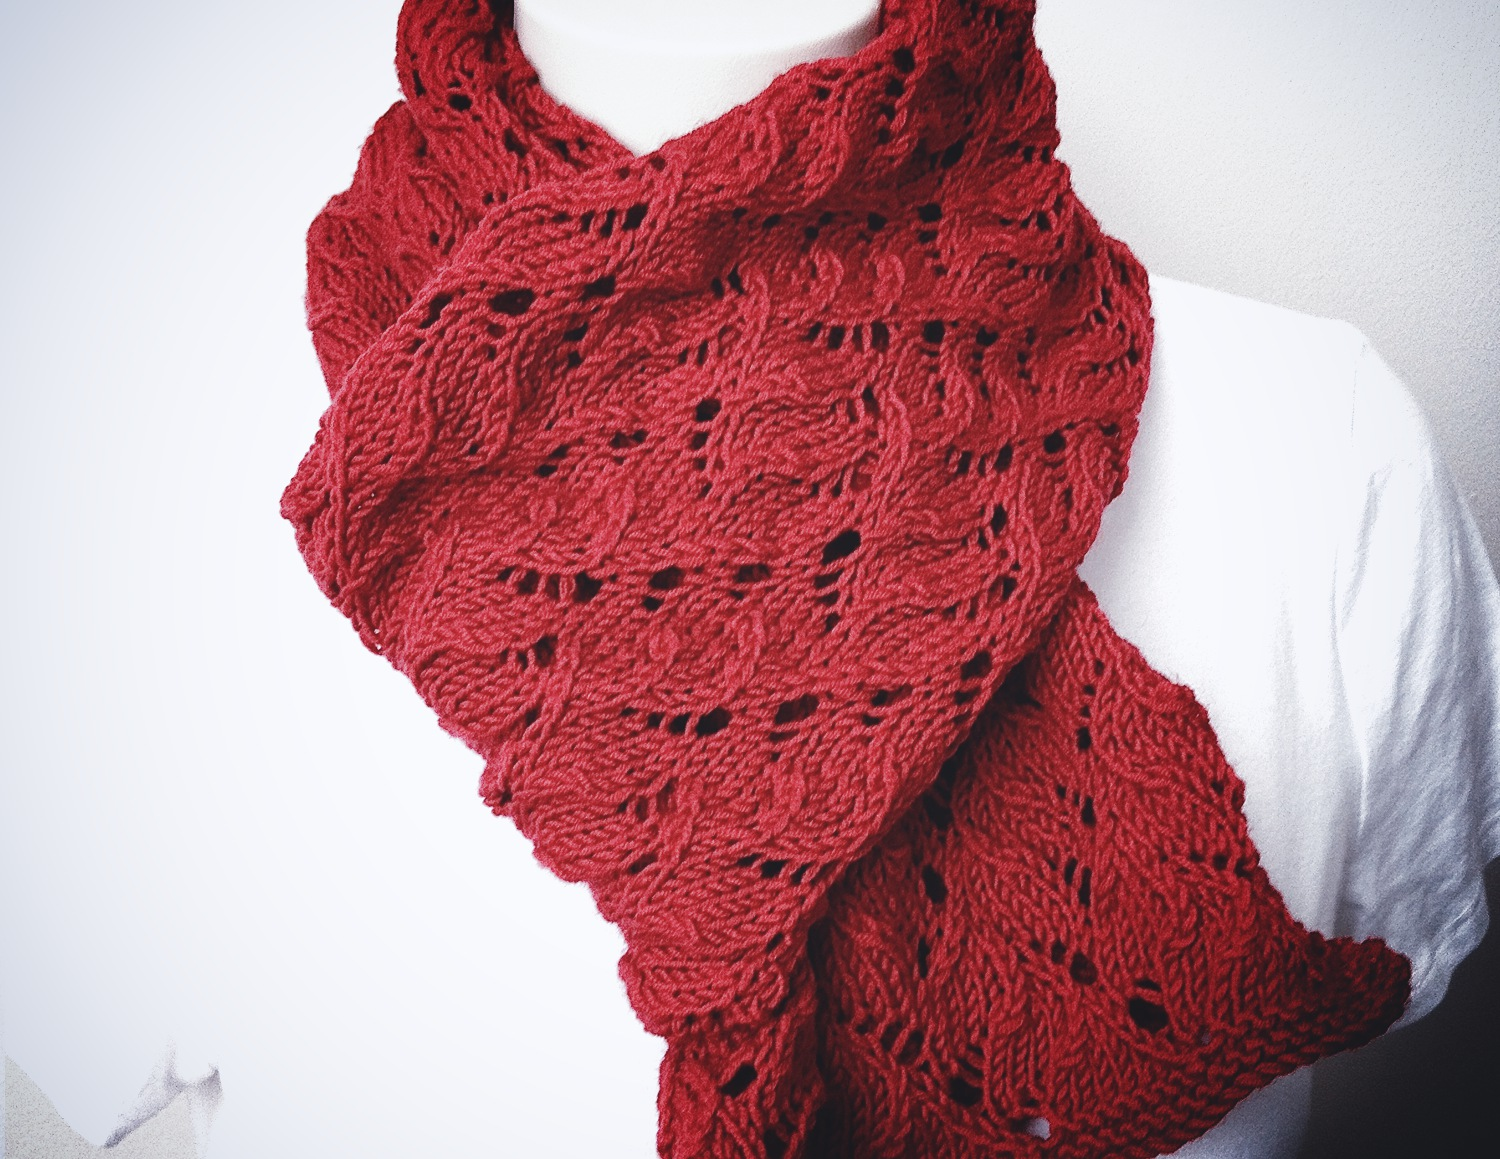 Knitting Terms Tbl : New knitting pattern red scarf